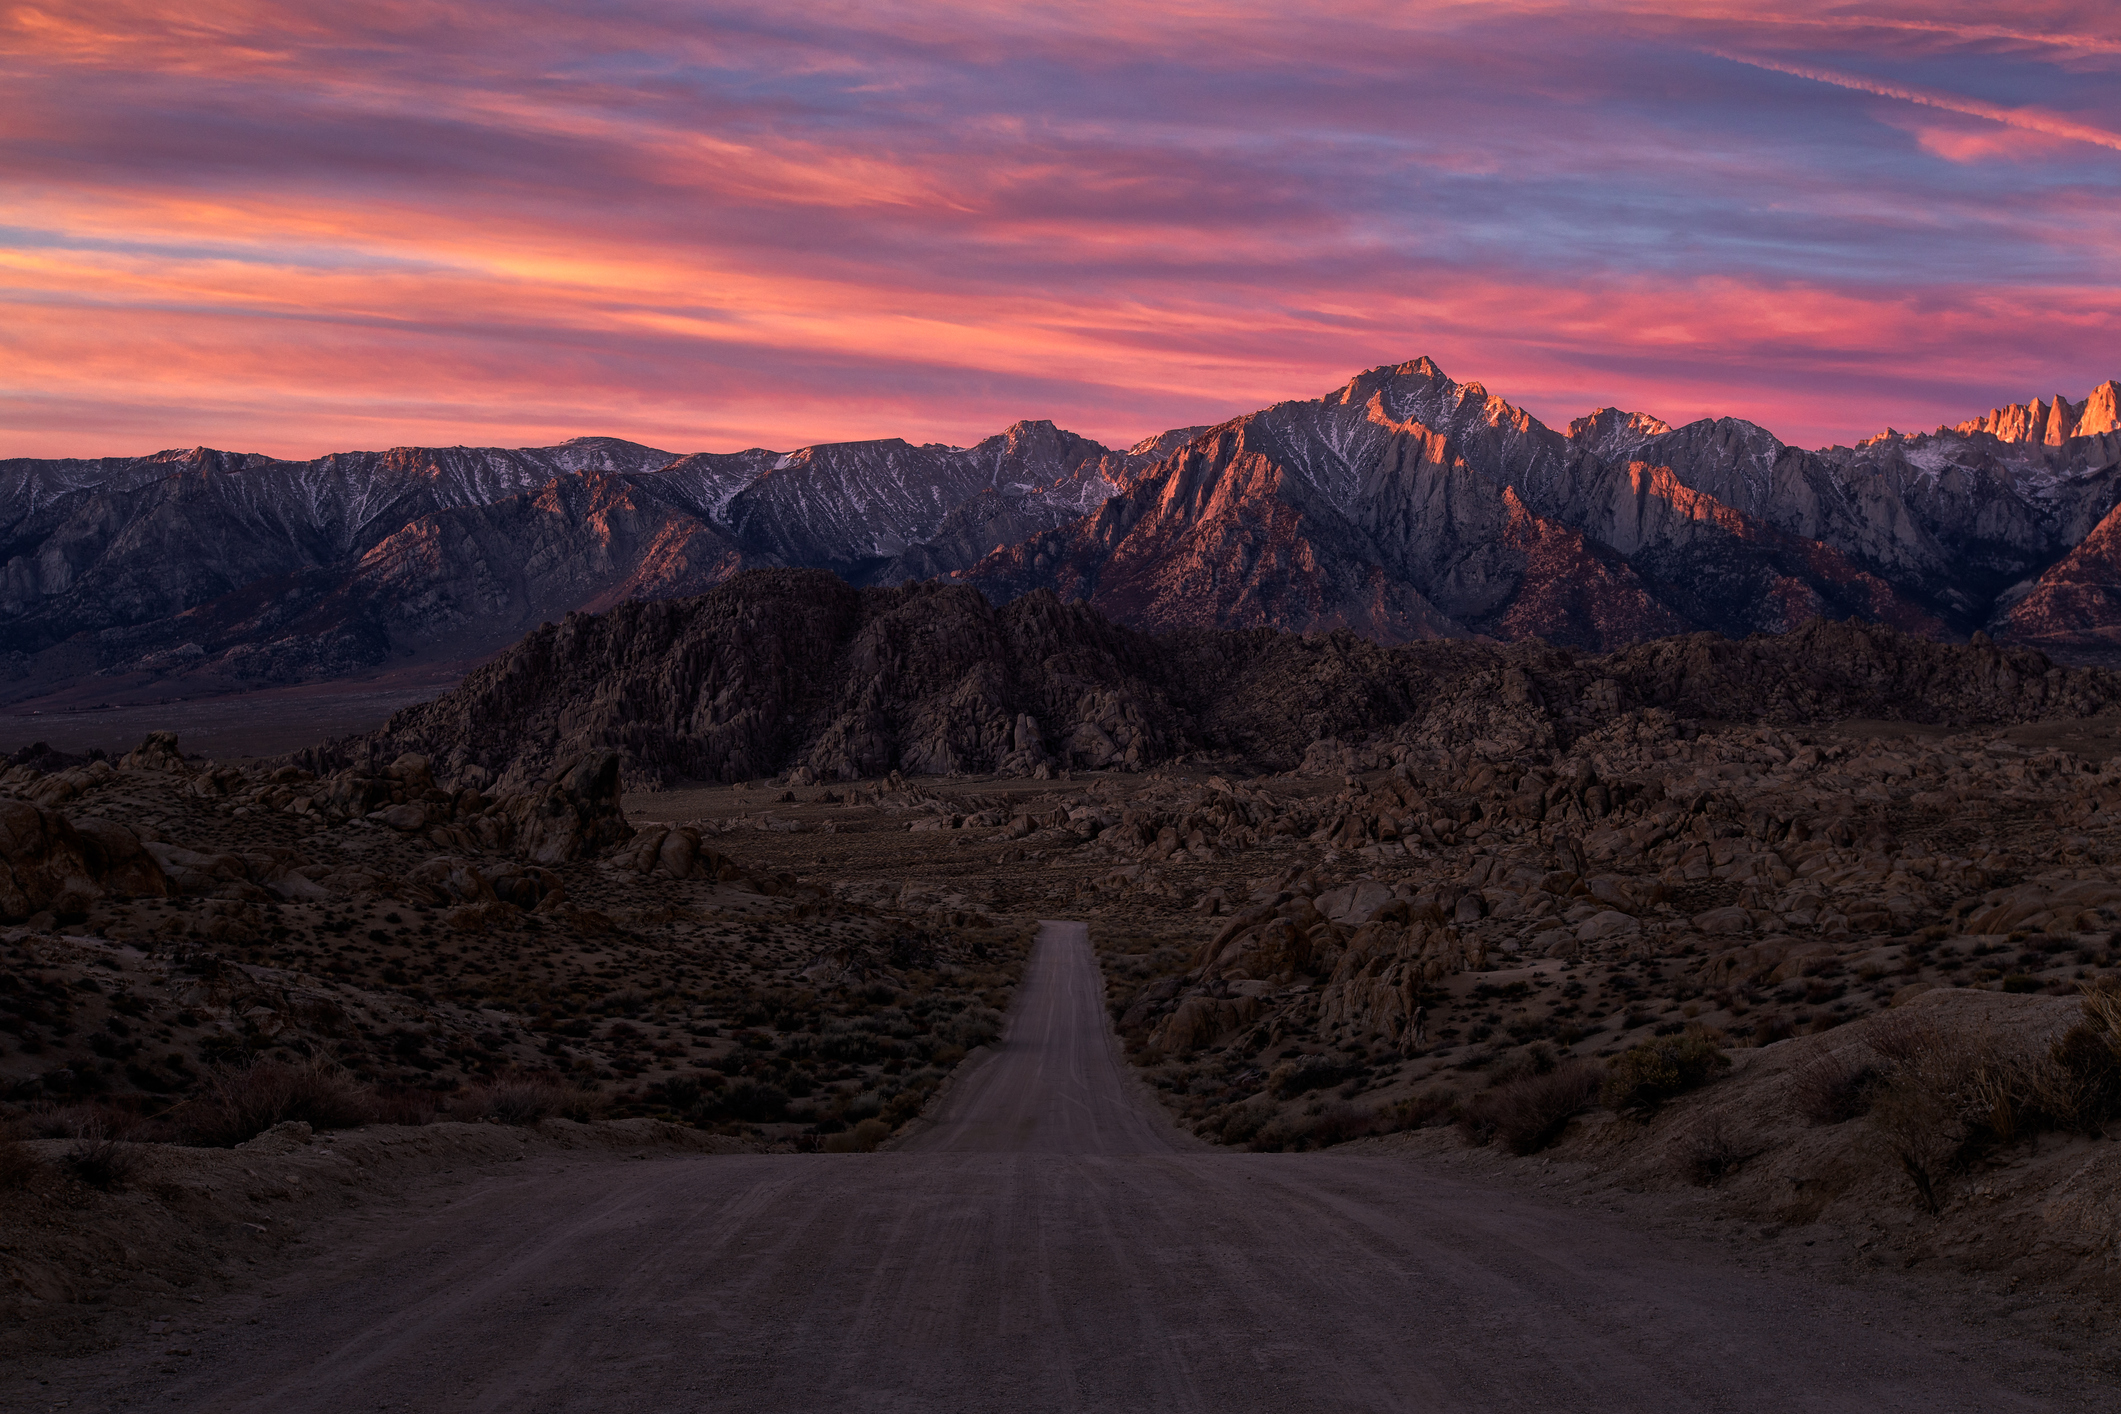 Sunrise from the iconic road in the Alabama Hills, Lone Pine, California